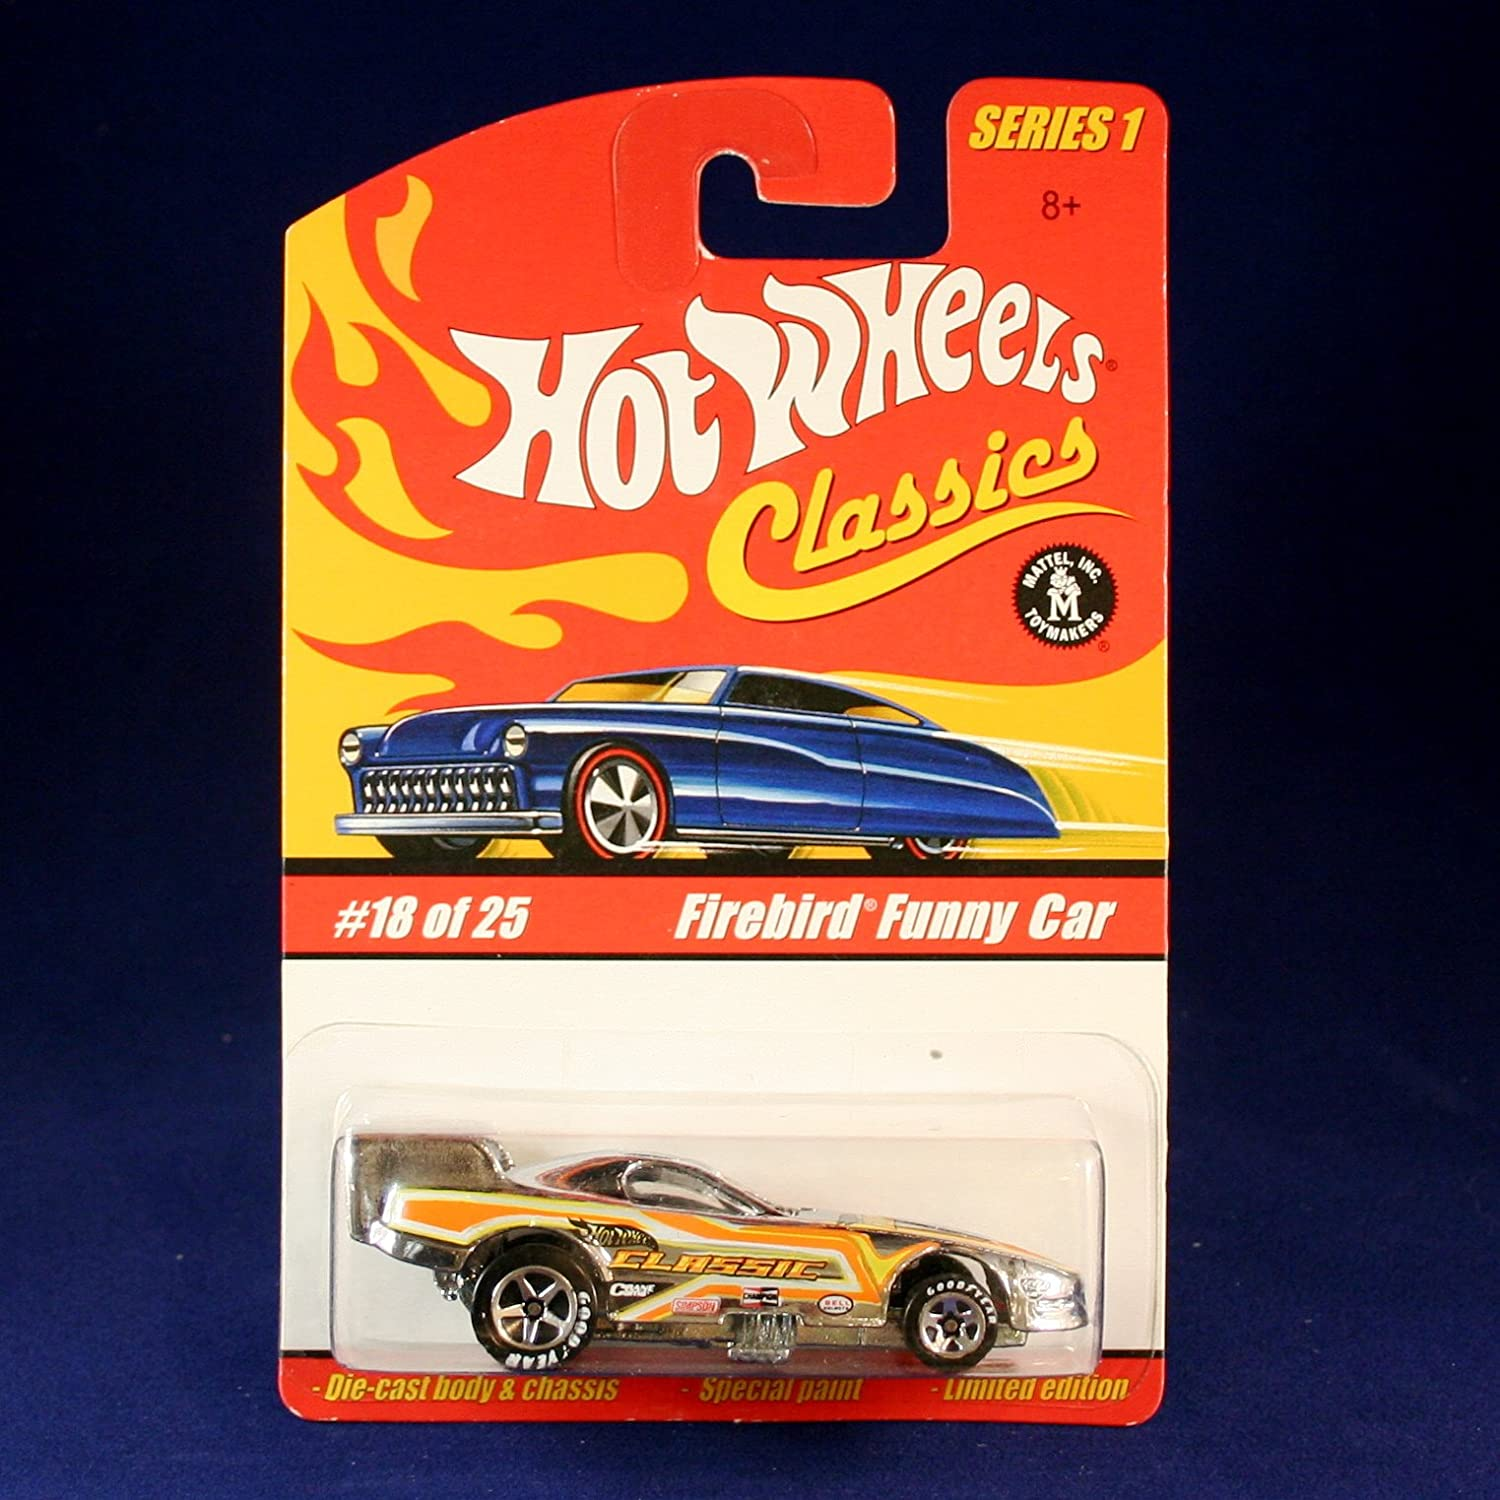 FIREBIRD FUNNY CAR (CHROME) 2004 Hot Wheels Classics 1 64 Scale SERIES 1 Die Cast Vehicle